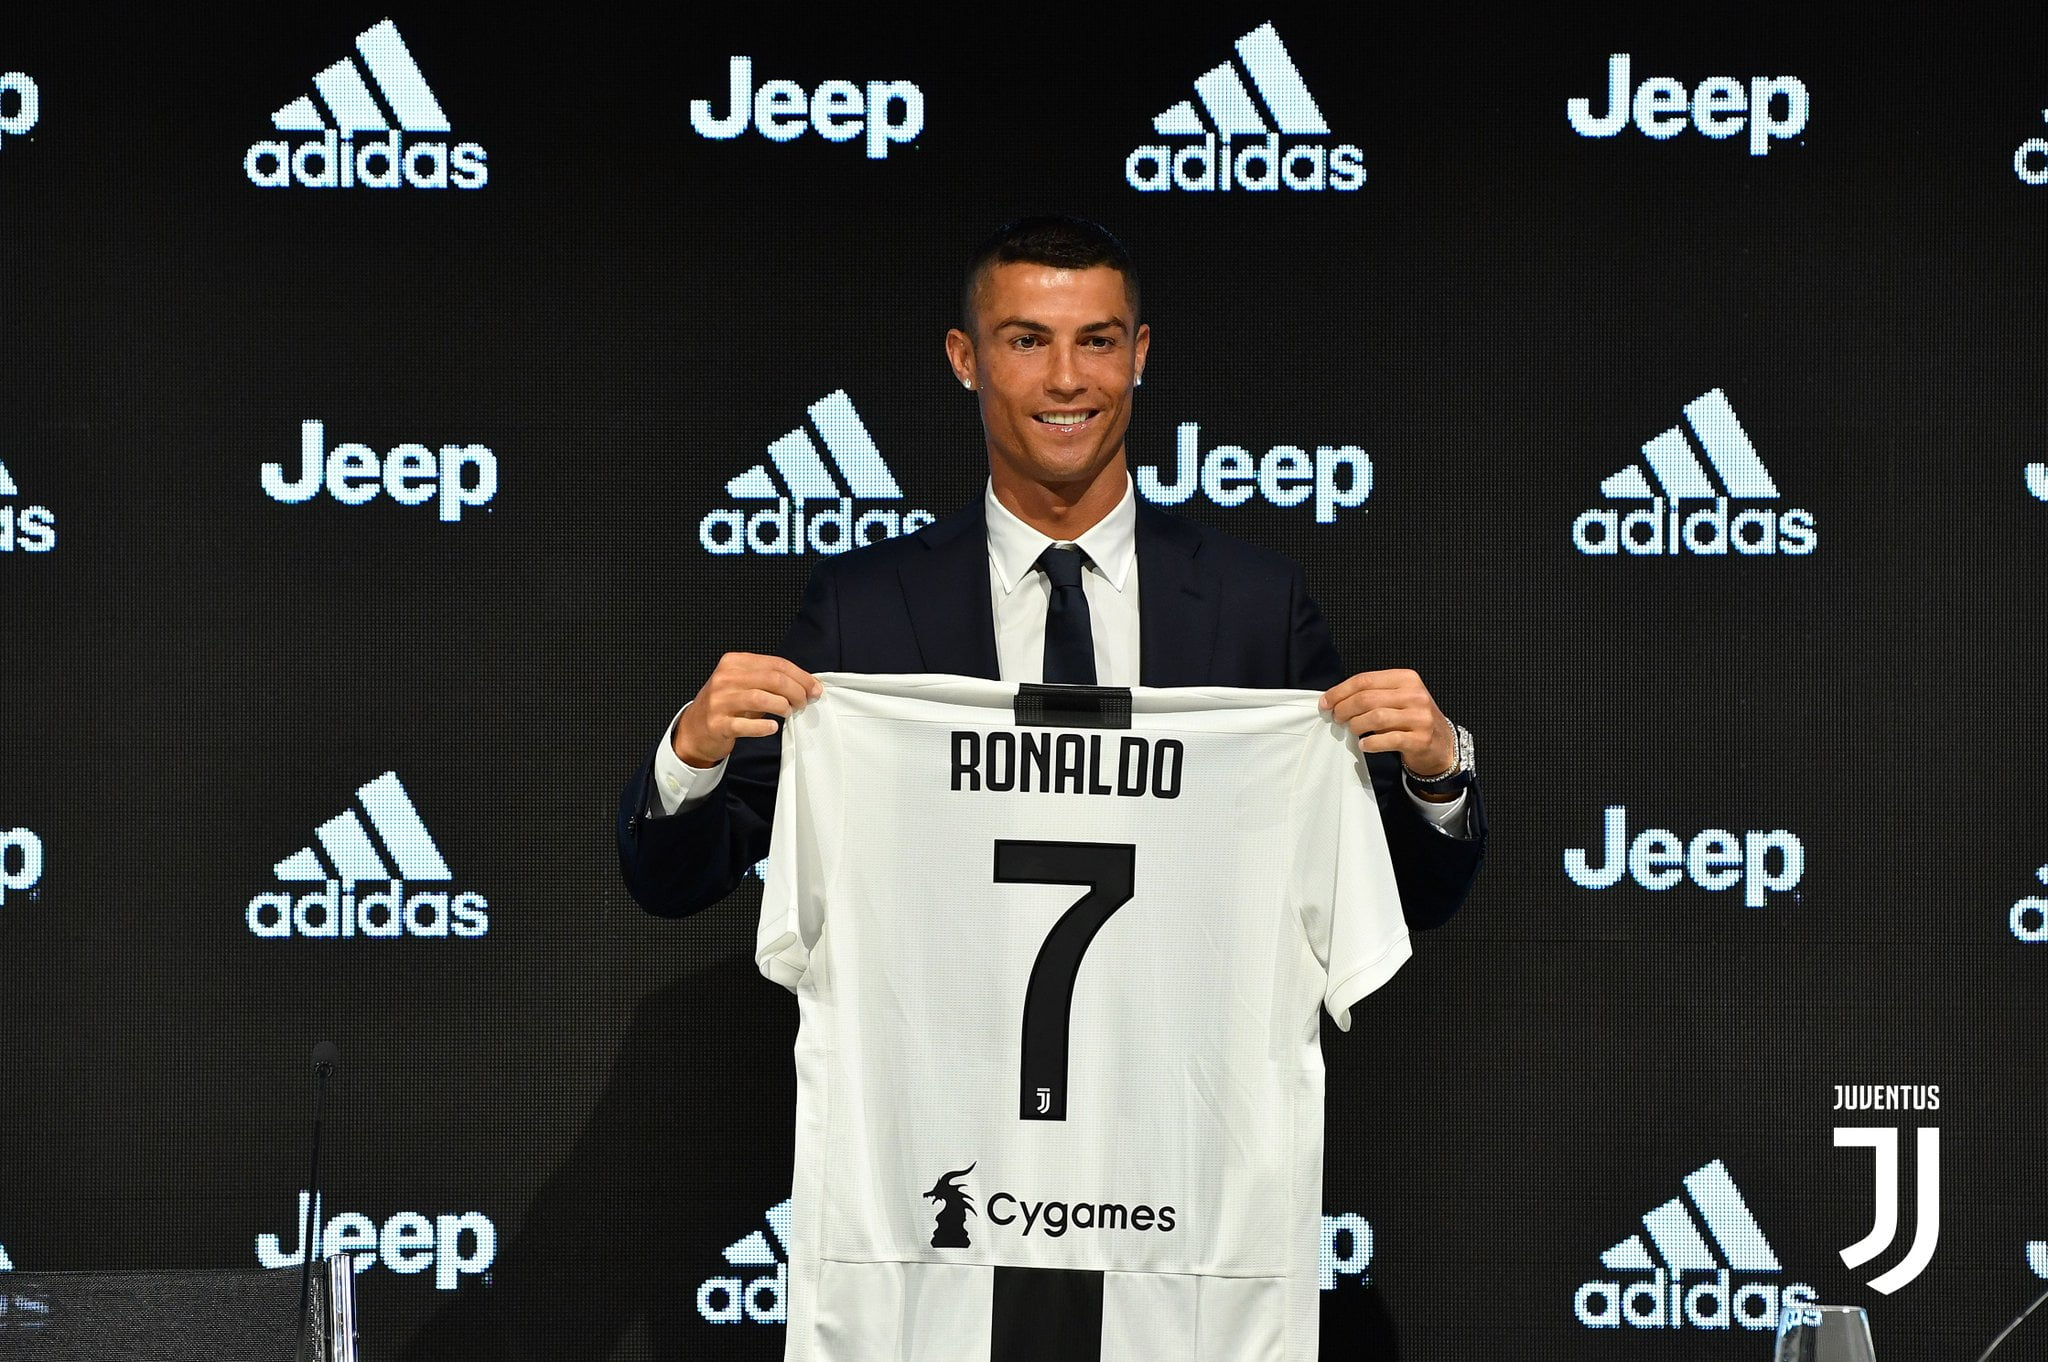 Cristiano Ronaldo during his presentation as a Juventus player in the summer of 2018.